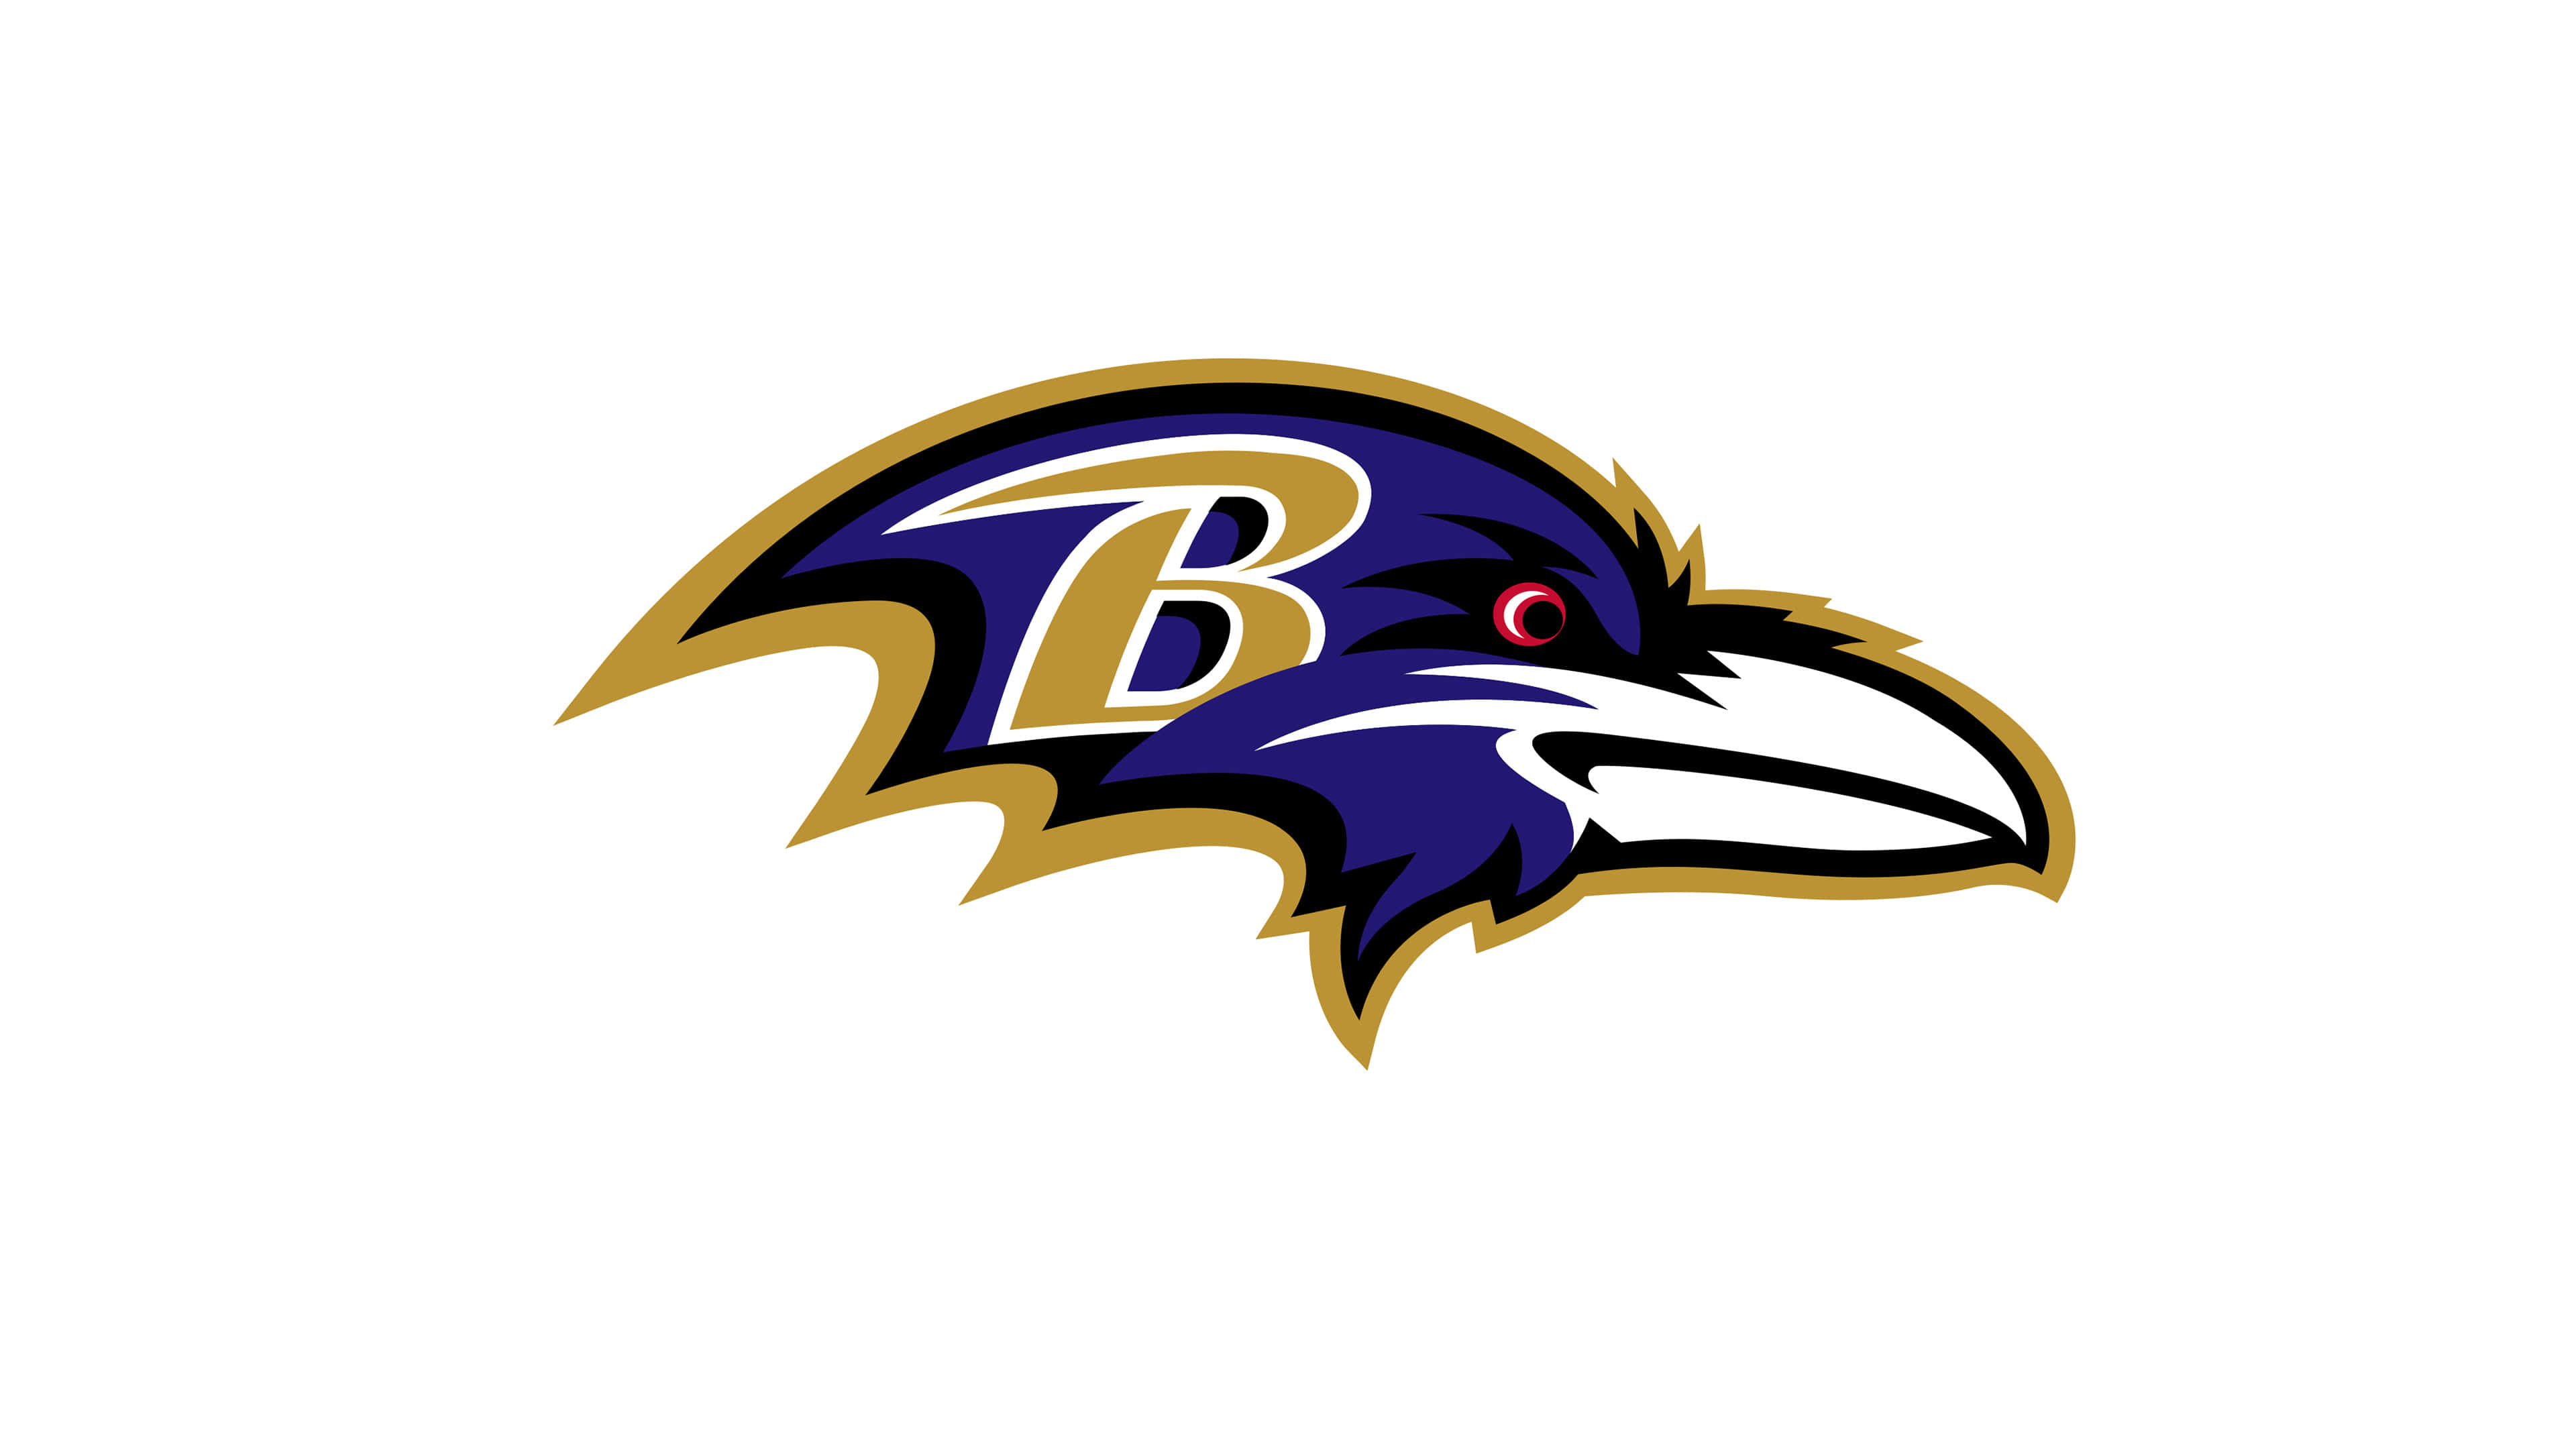 baltimore ravens nfl logo uhd 4k wallpaper